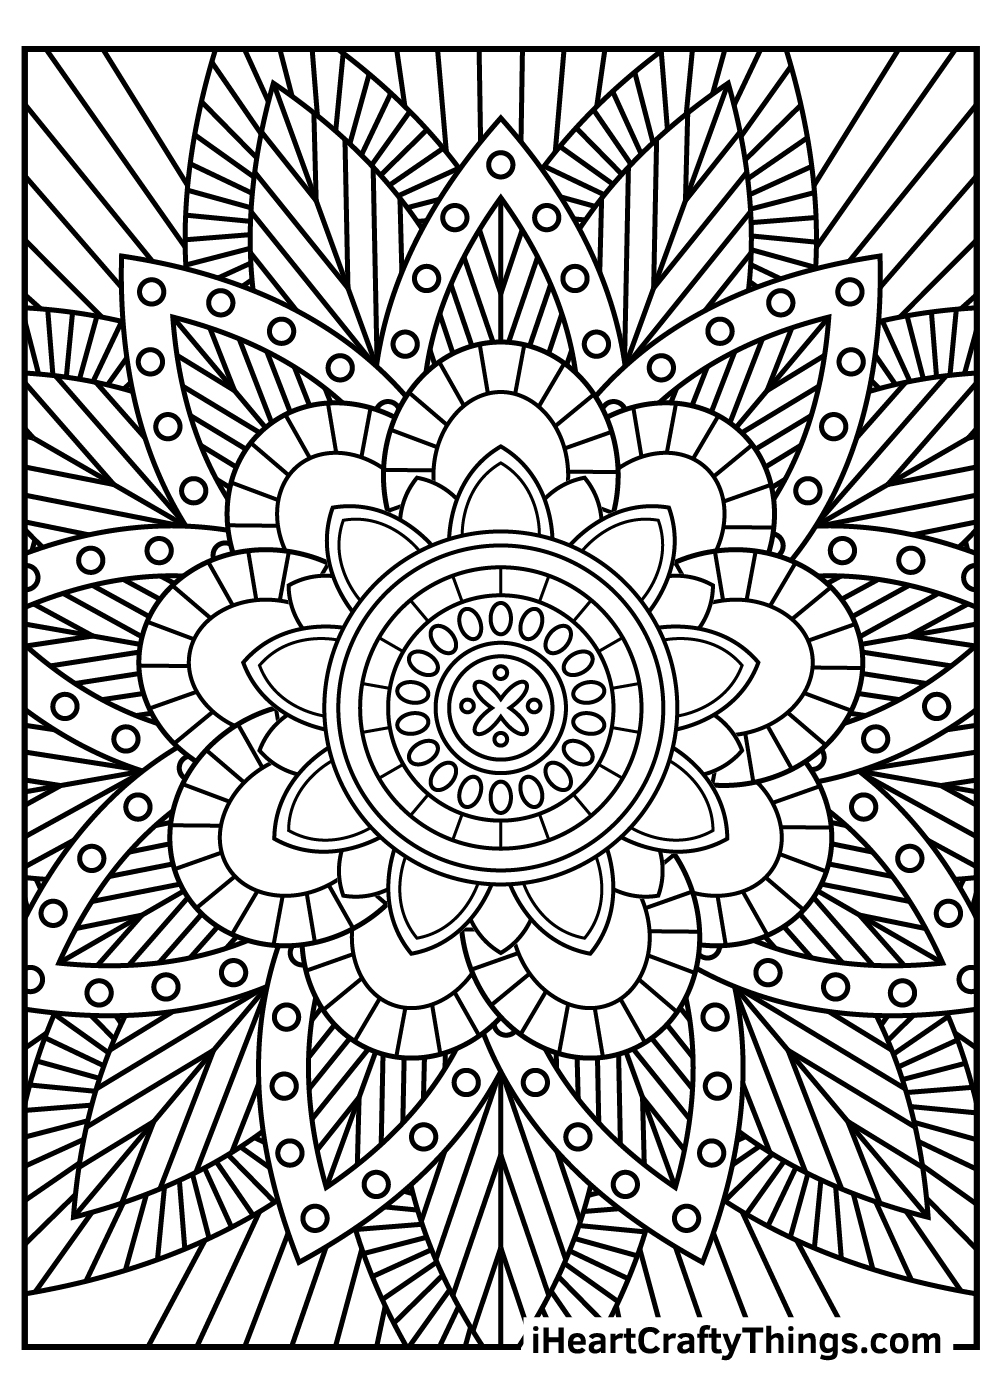 easy stress relief coloring pages free printable